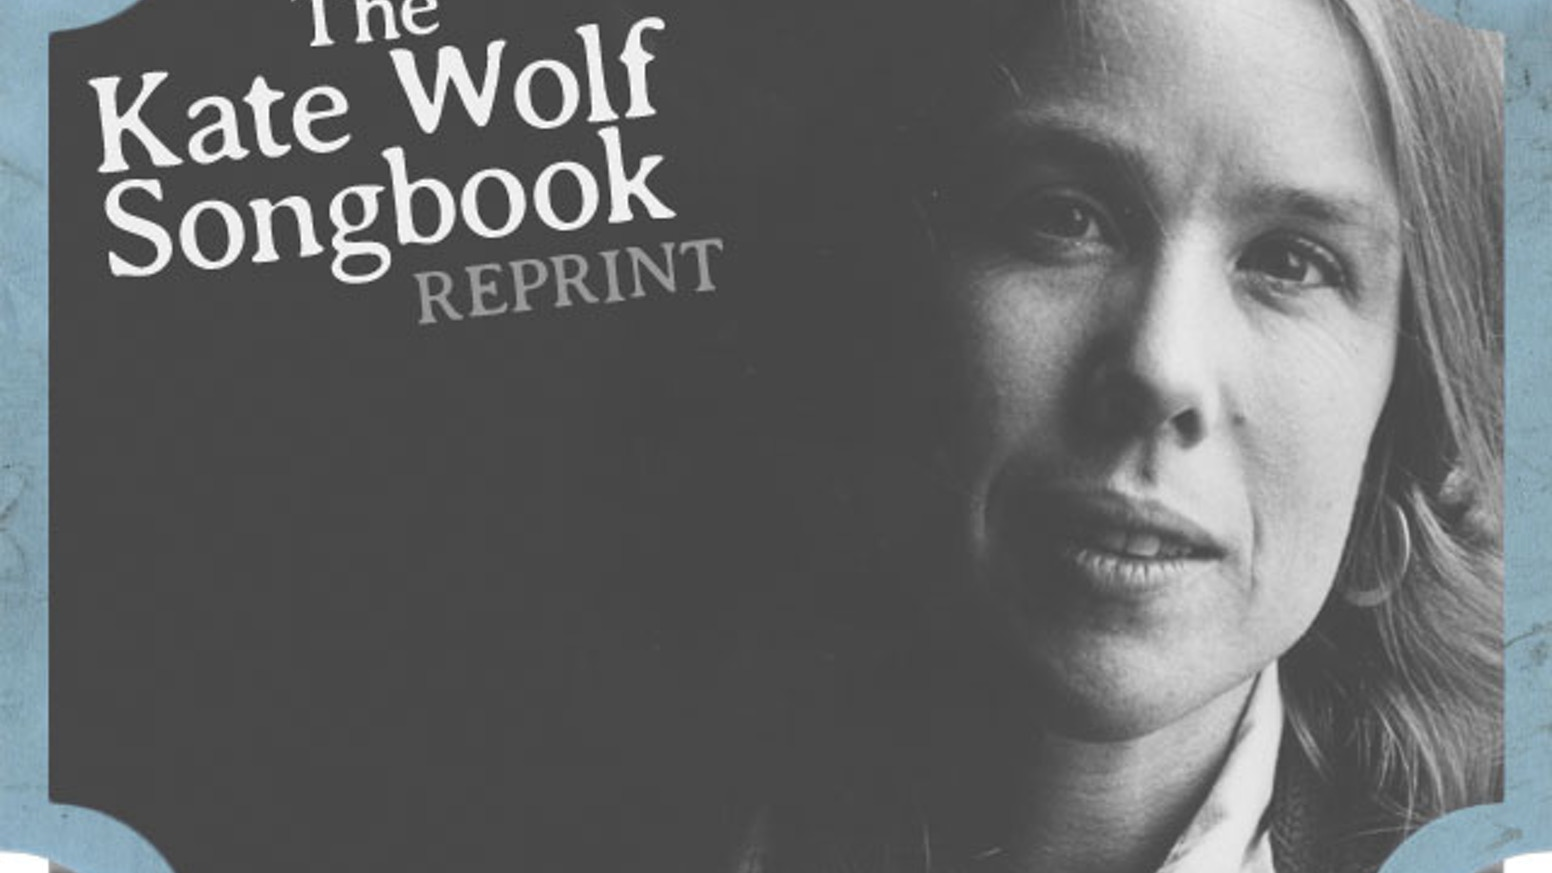 Help Kate's family bring back The Kate Wolf Songbook!